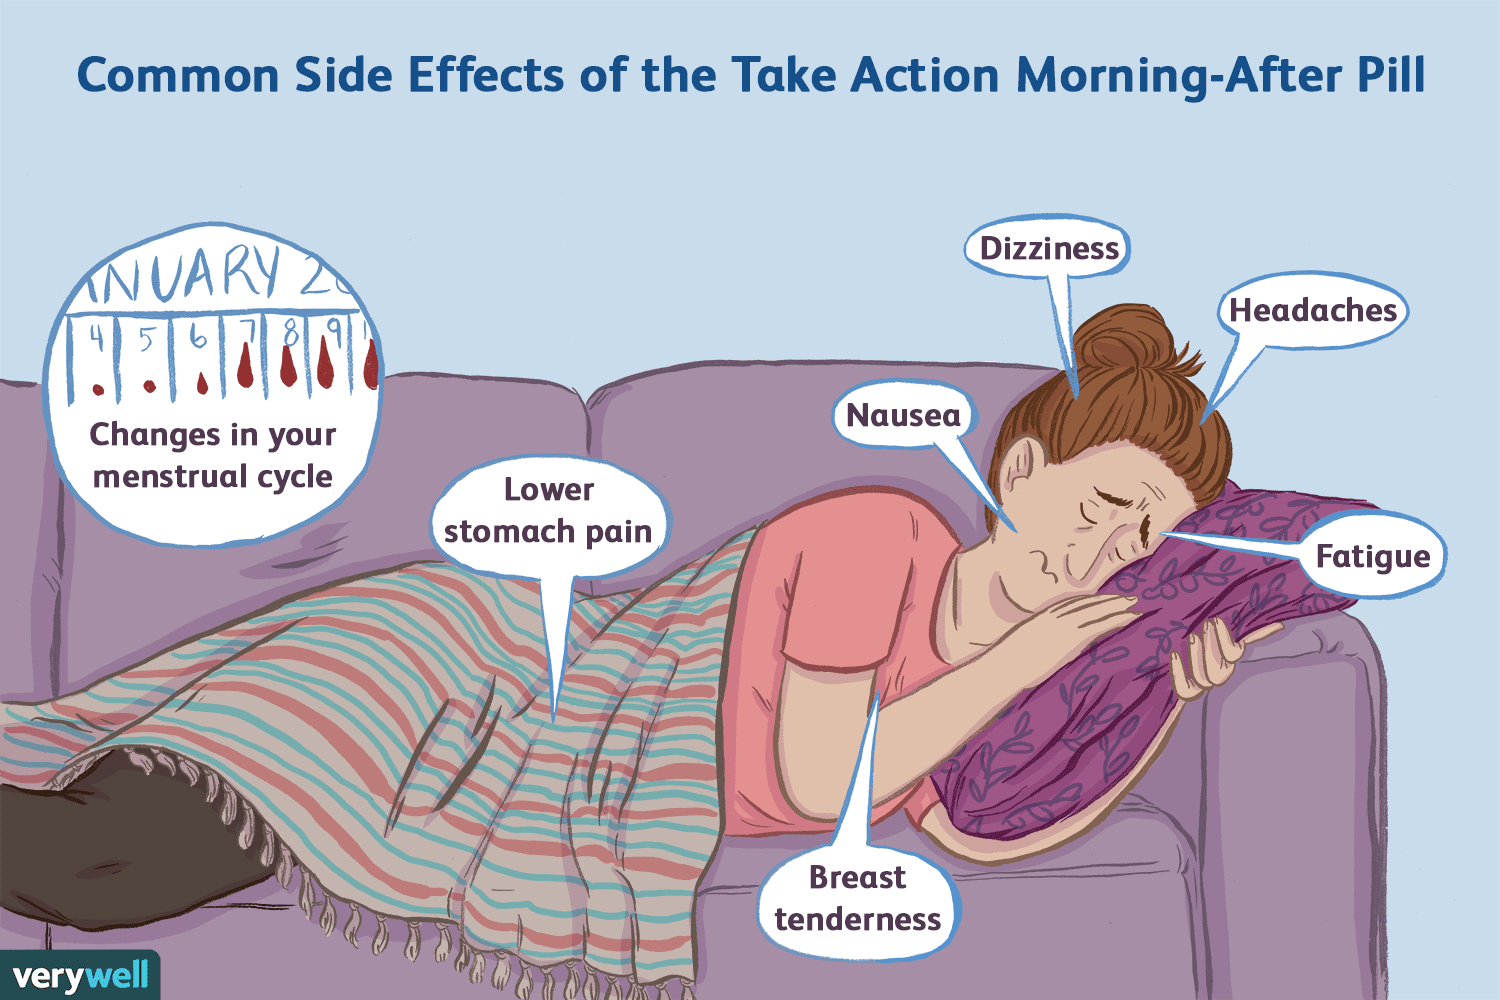 The Take Action Morning-After Pill